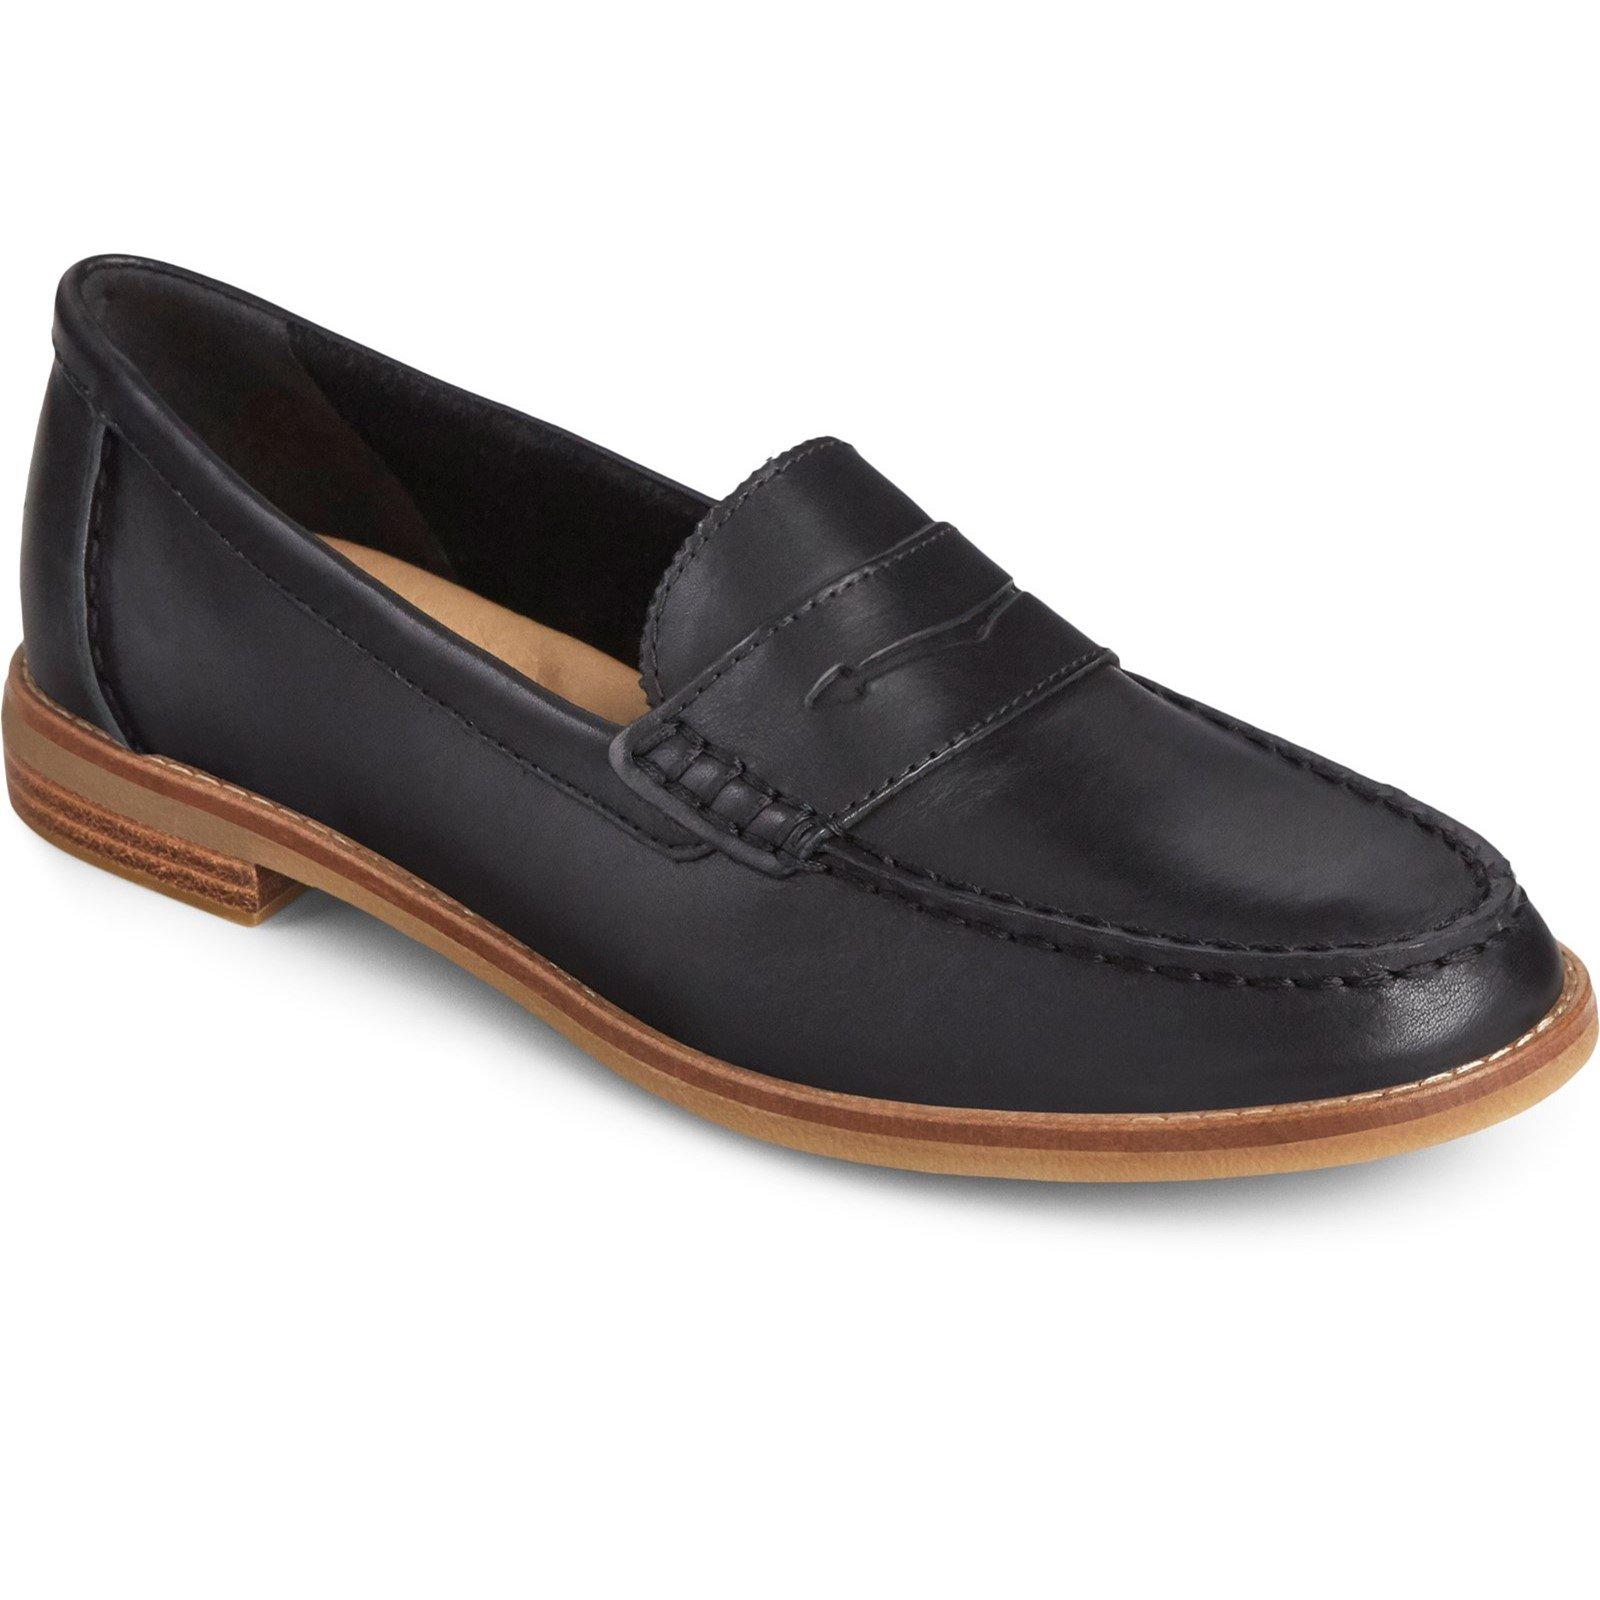 Sperry Women's Seaport Penny Loafer Various Colours 32403 - Black 6